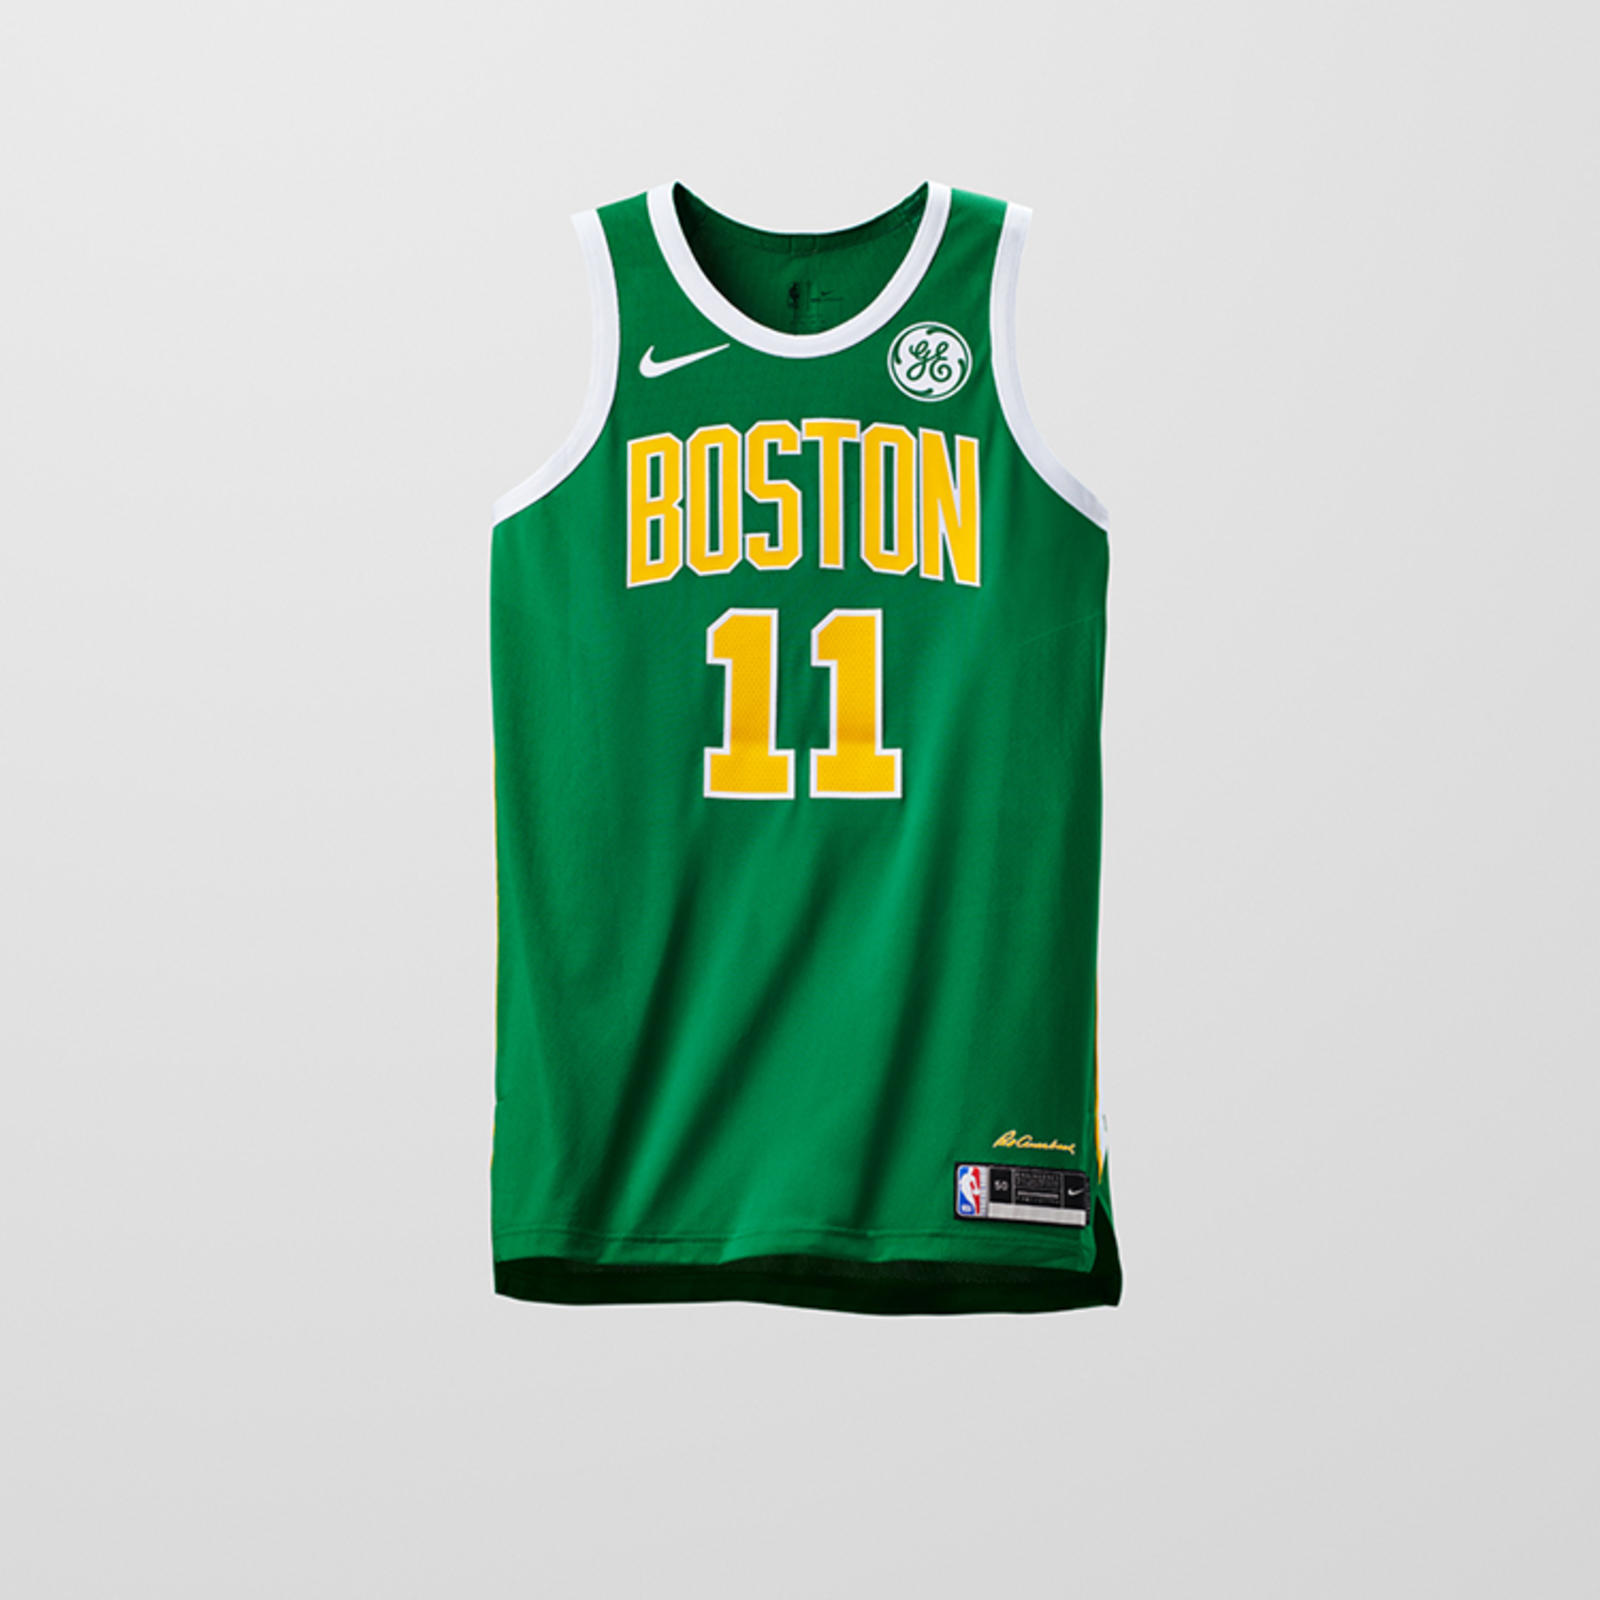 Introducing the Nike x NBA EARNED Edition Uniforms 1. BOSTON CELTICS 0cf032587